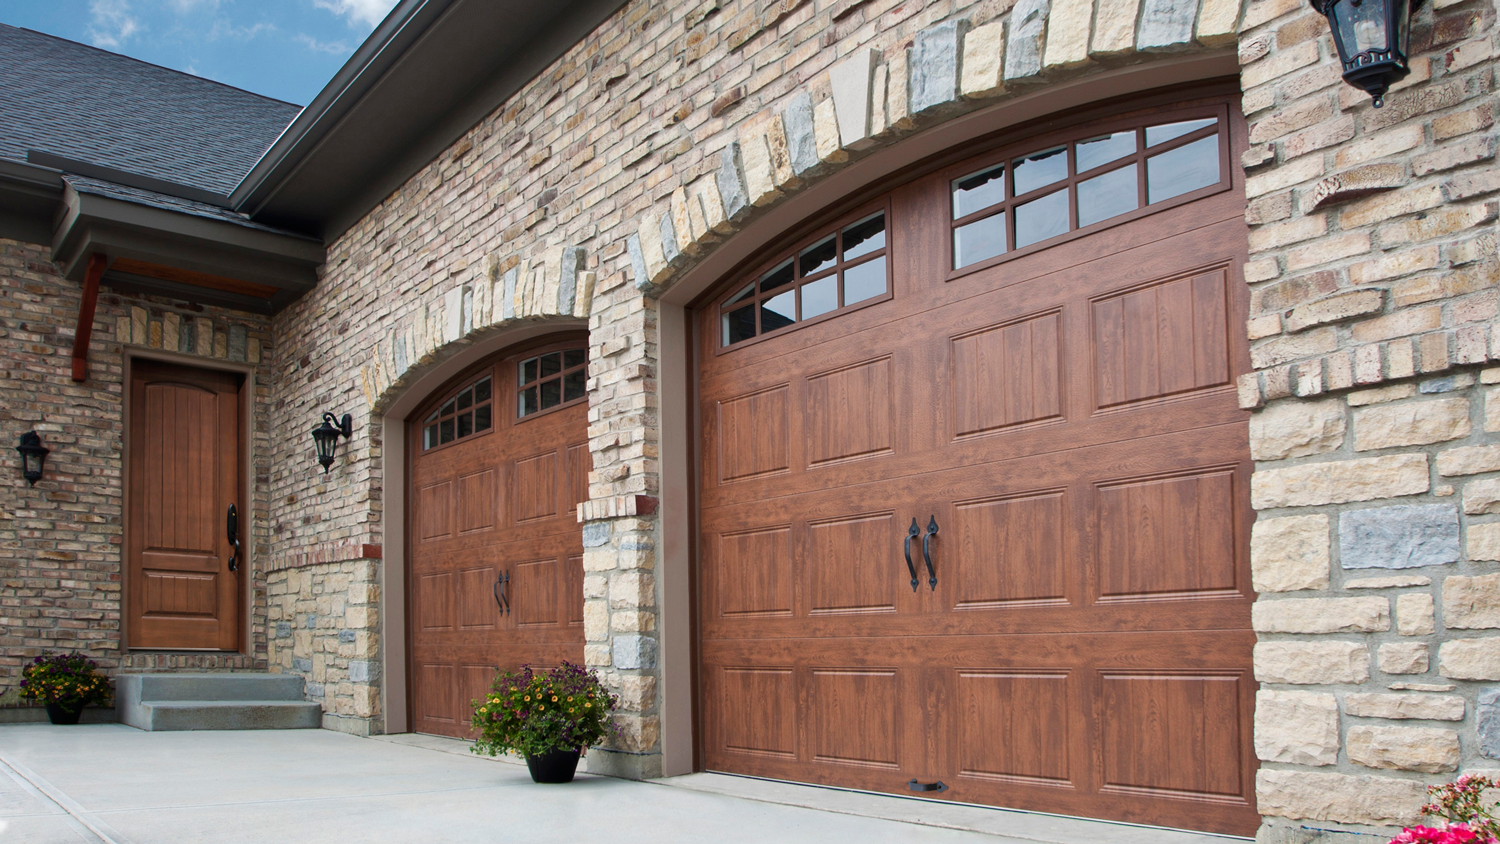 844 #3D6B8E Garage Door Repair Maple Bluff WI PRO Garage Door Service save image Garage Doors Installers 37771500